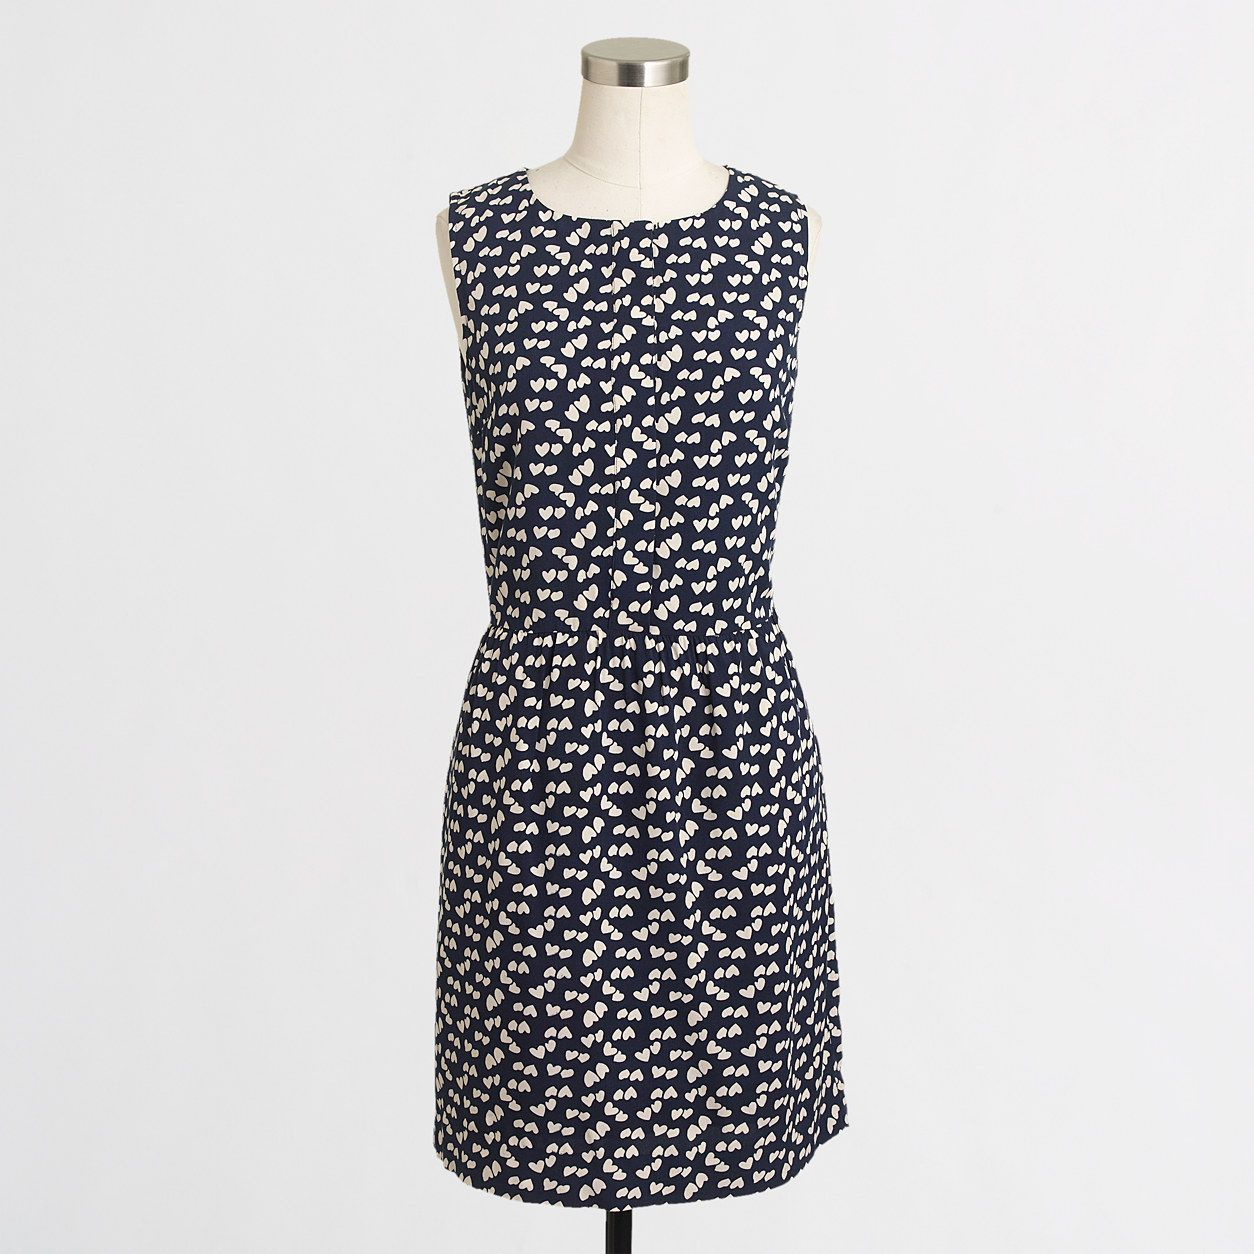 Factory scattered hearts dress : Waist-Defined Dresses   J.Crew Factory